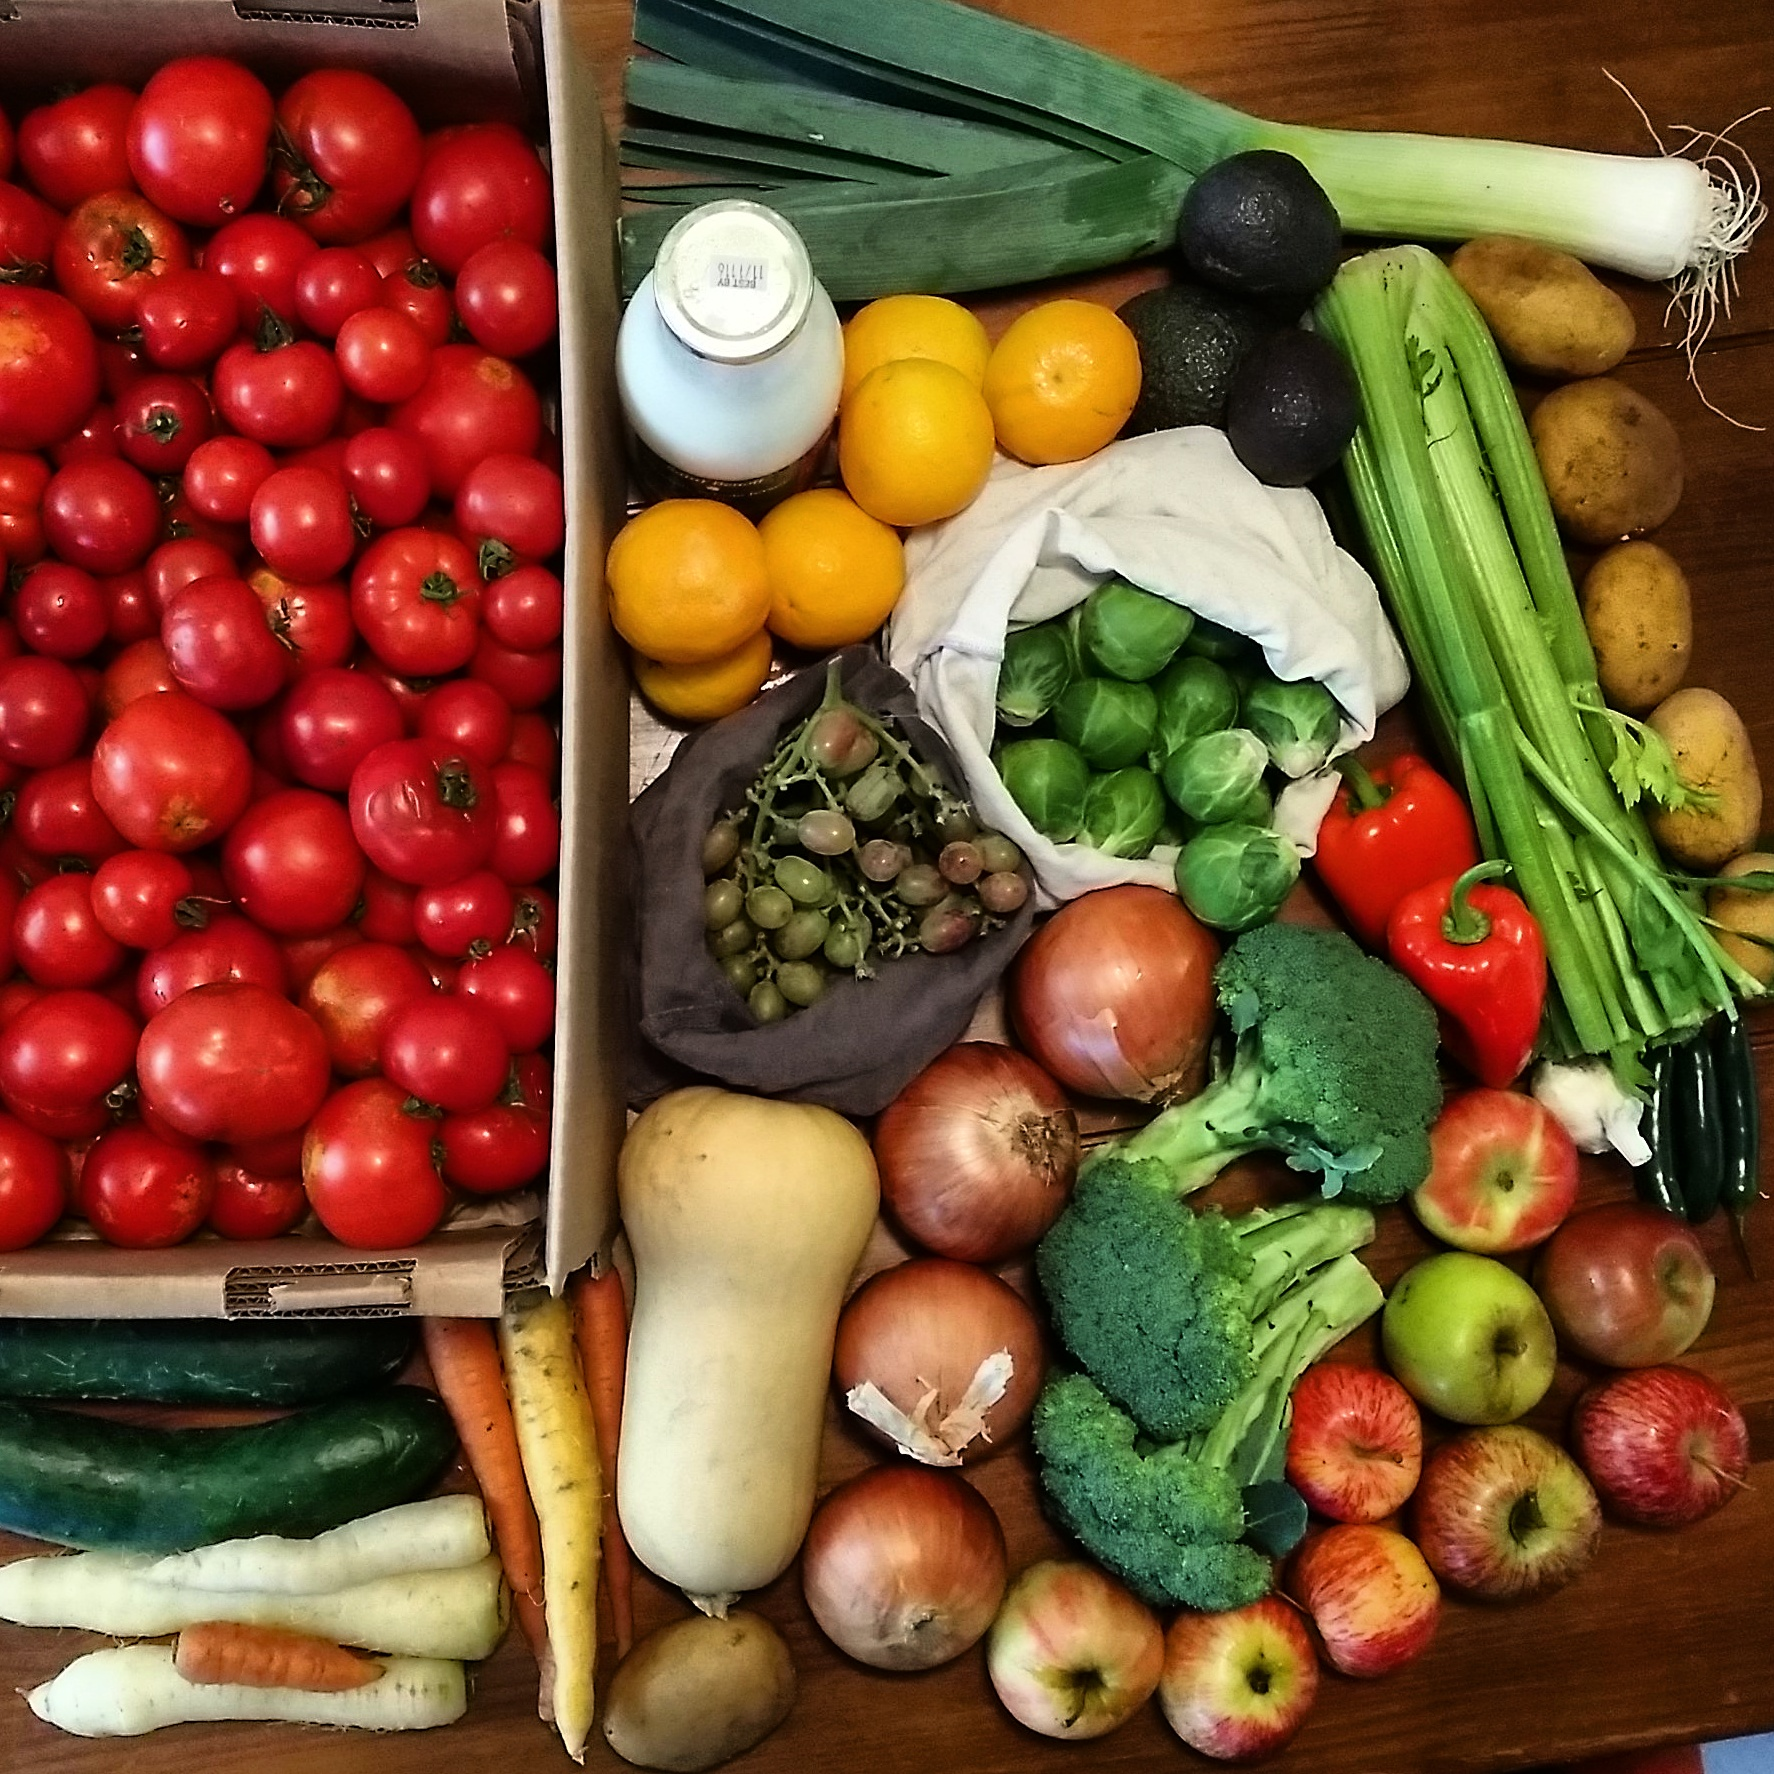 How to Store Produce Without Plastic - Zero-Waste Chef